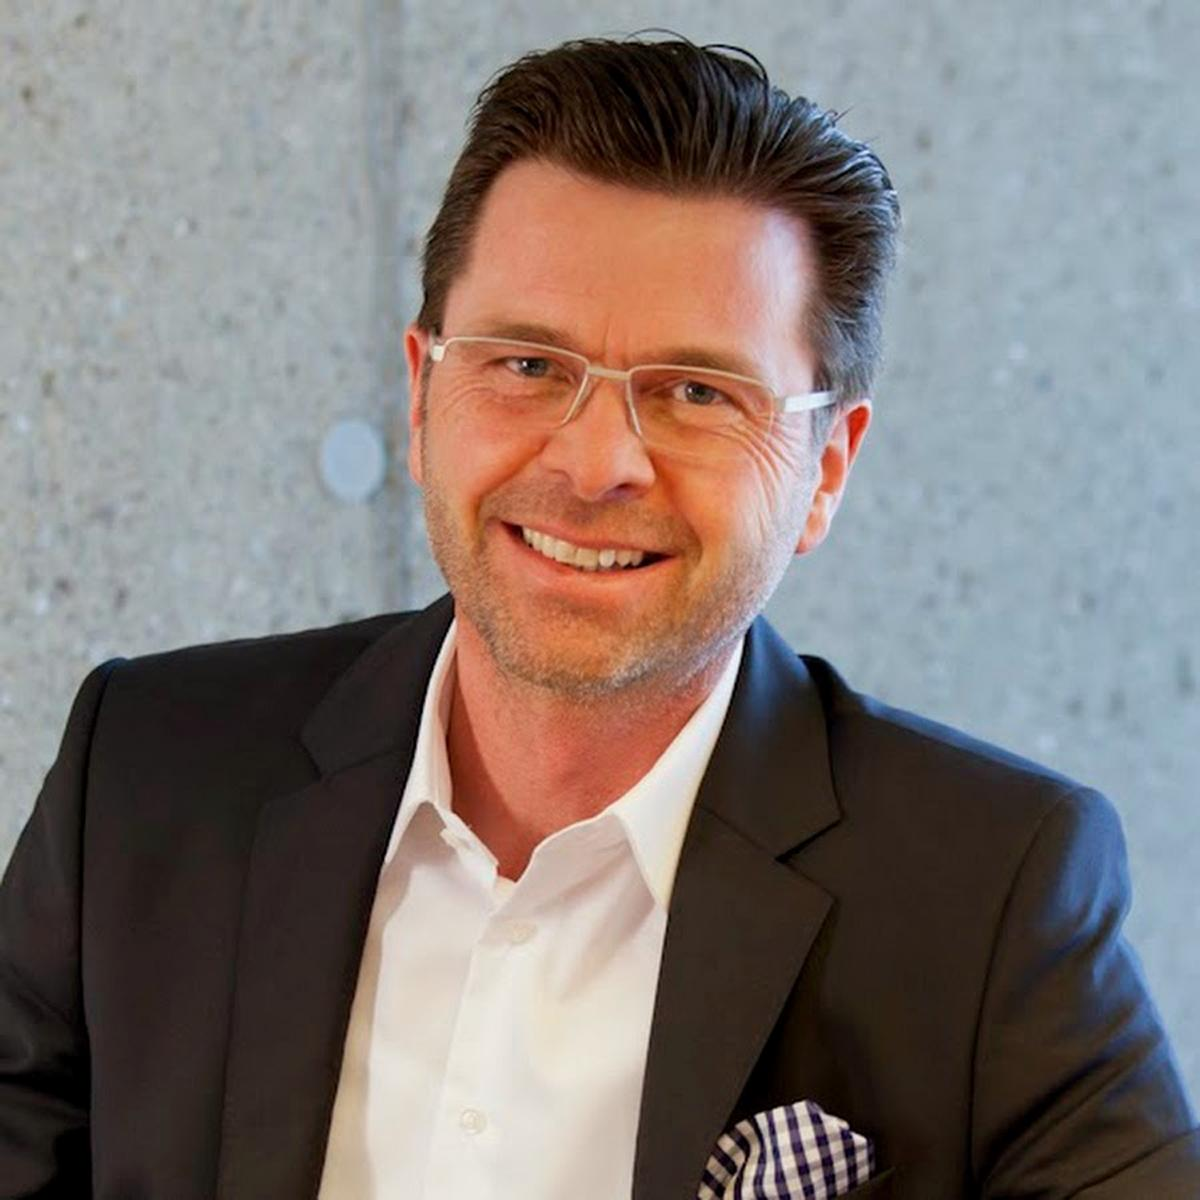 Thermarium has also recently appointed a new management team, consisting of Adrian Egger and Jürgen Klingenschmid (pictured)